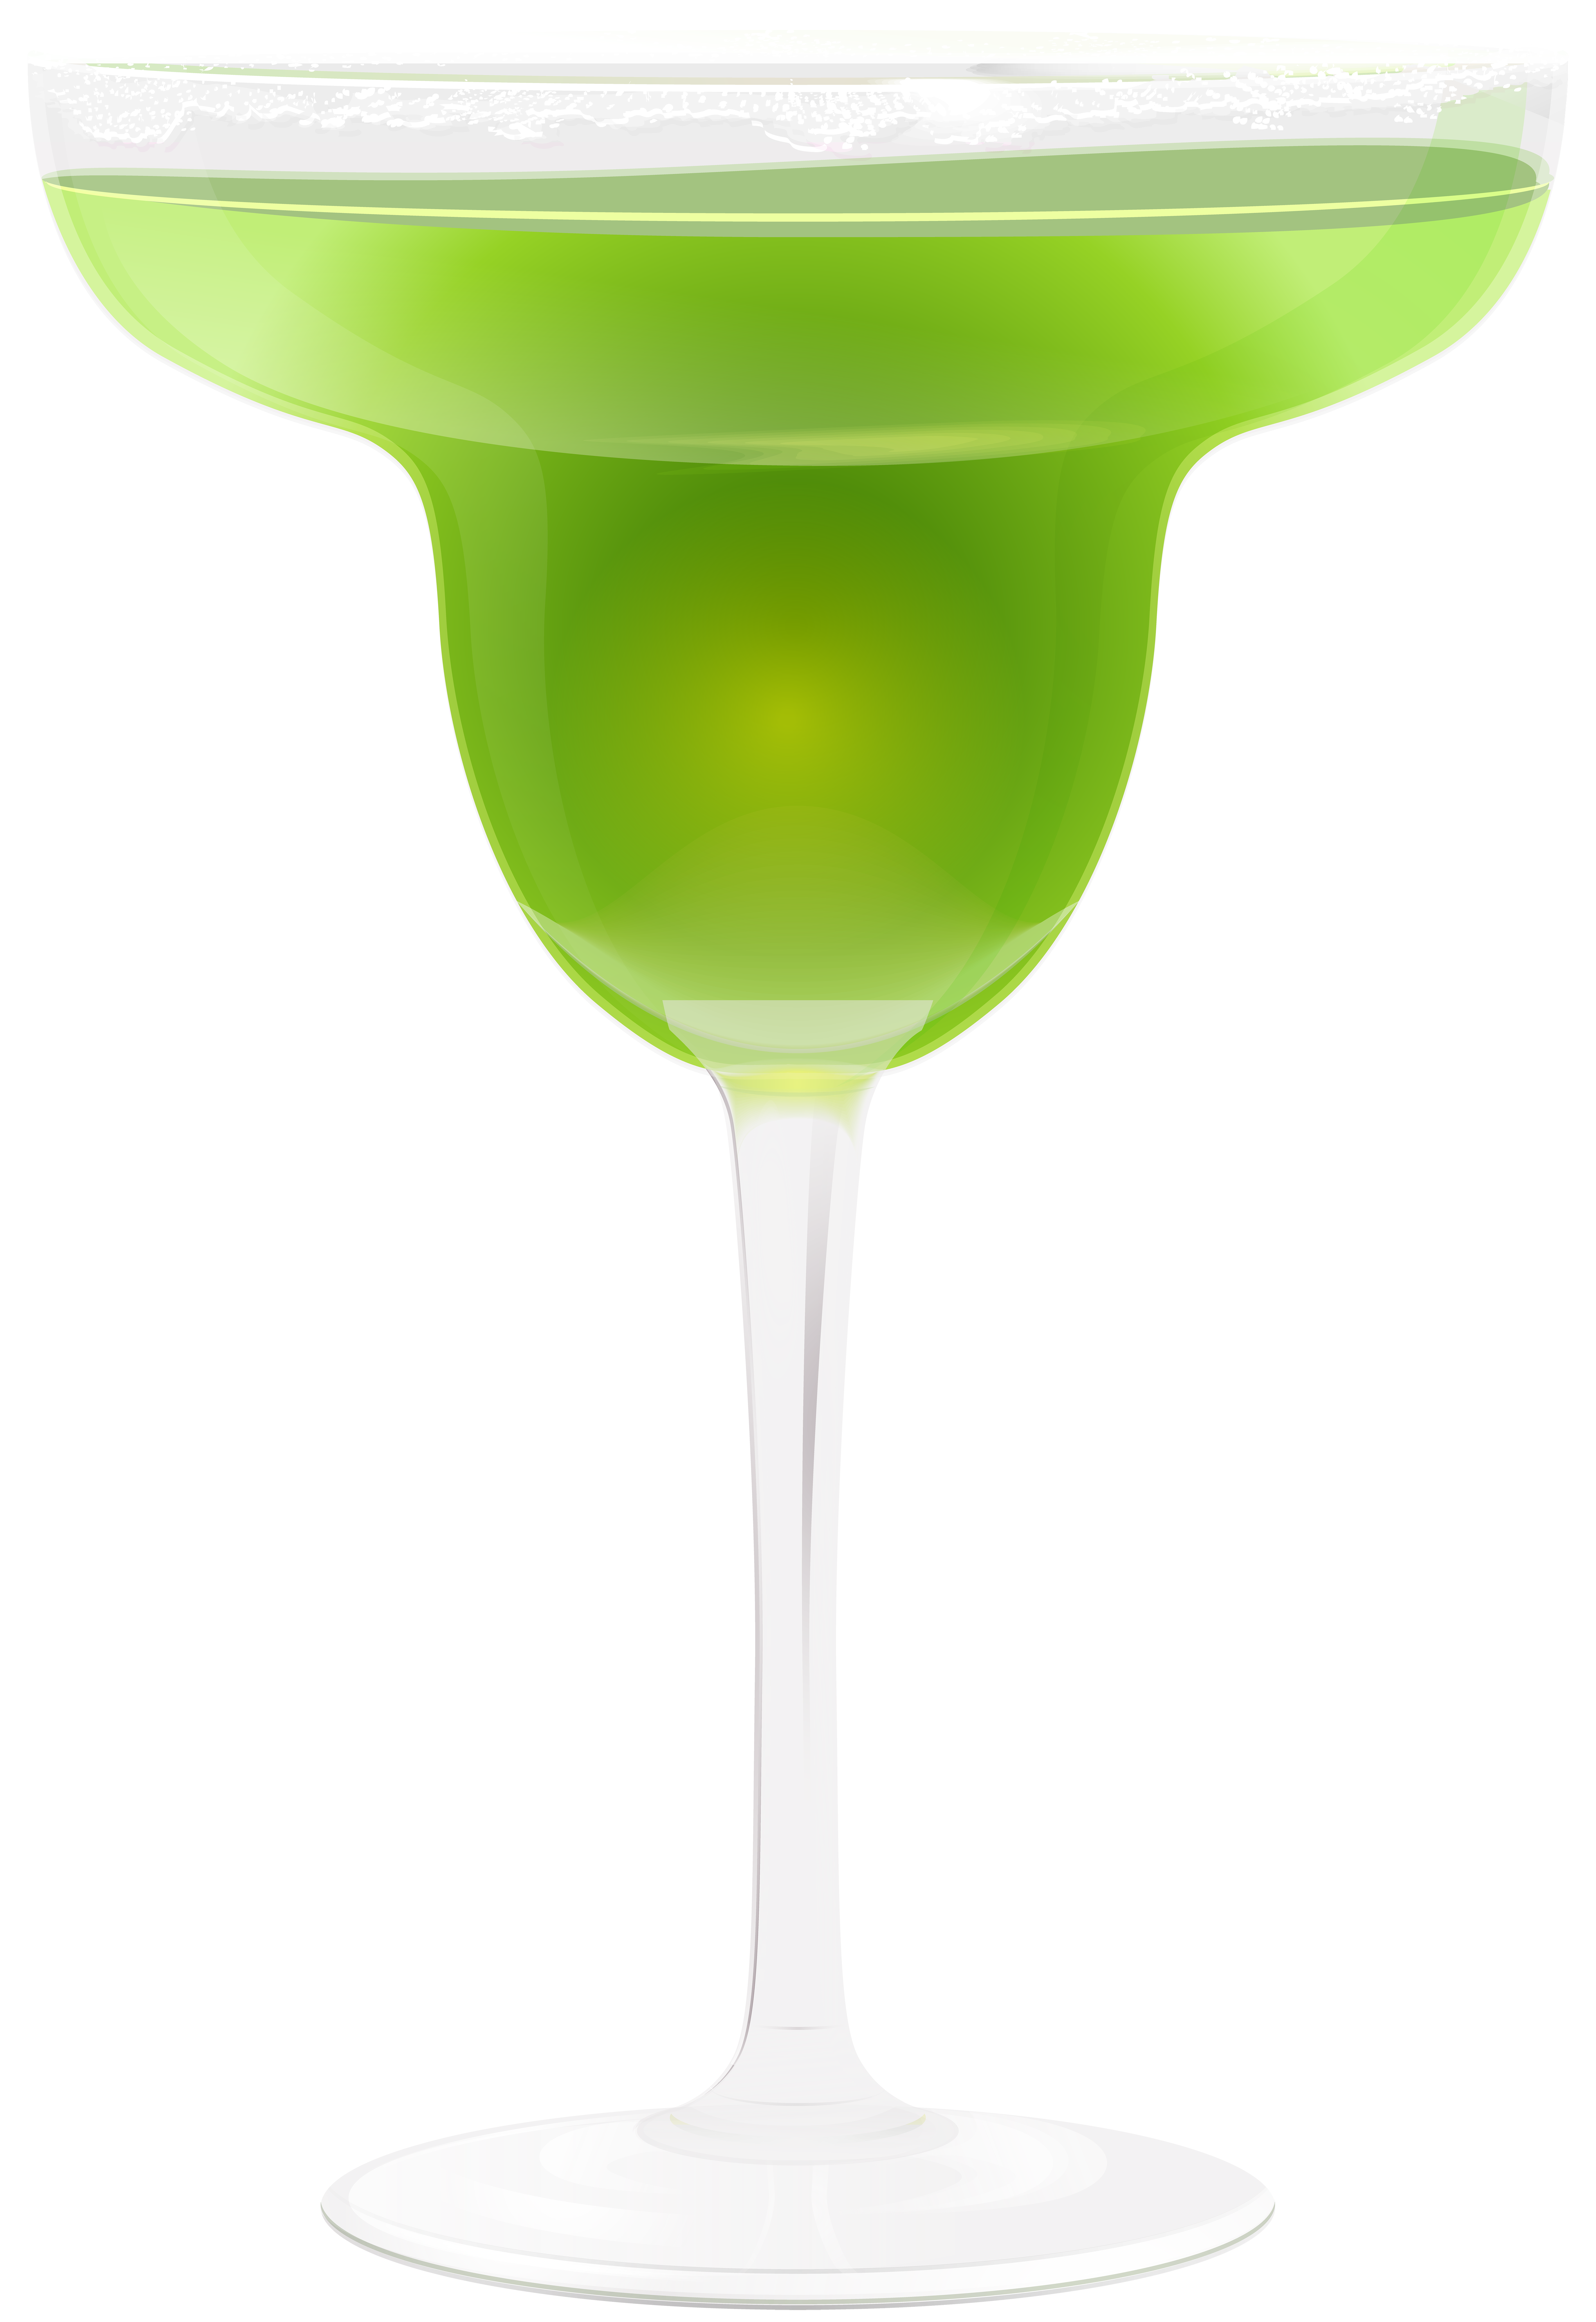 Clip art png image. Drink clipart green drink